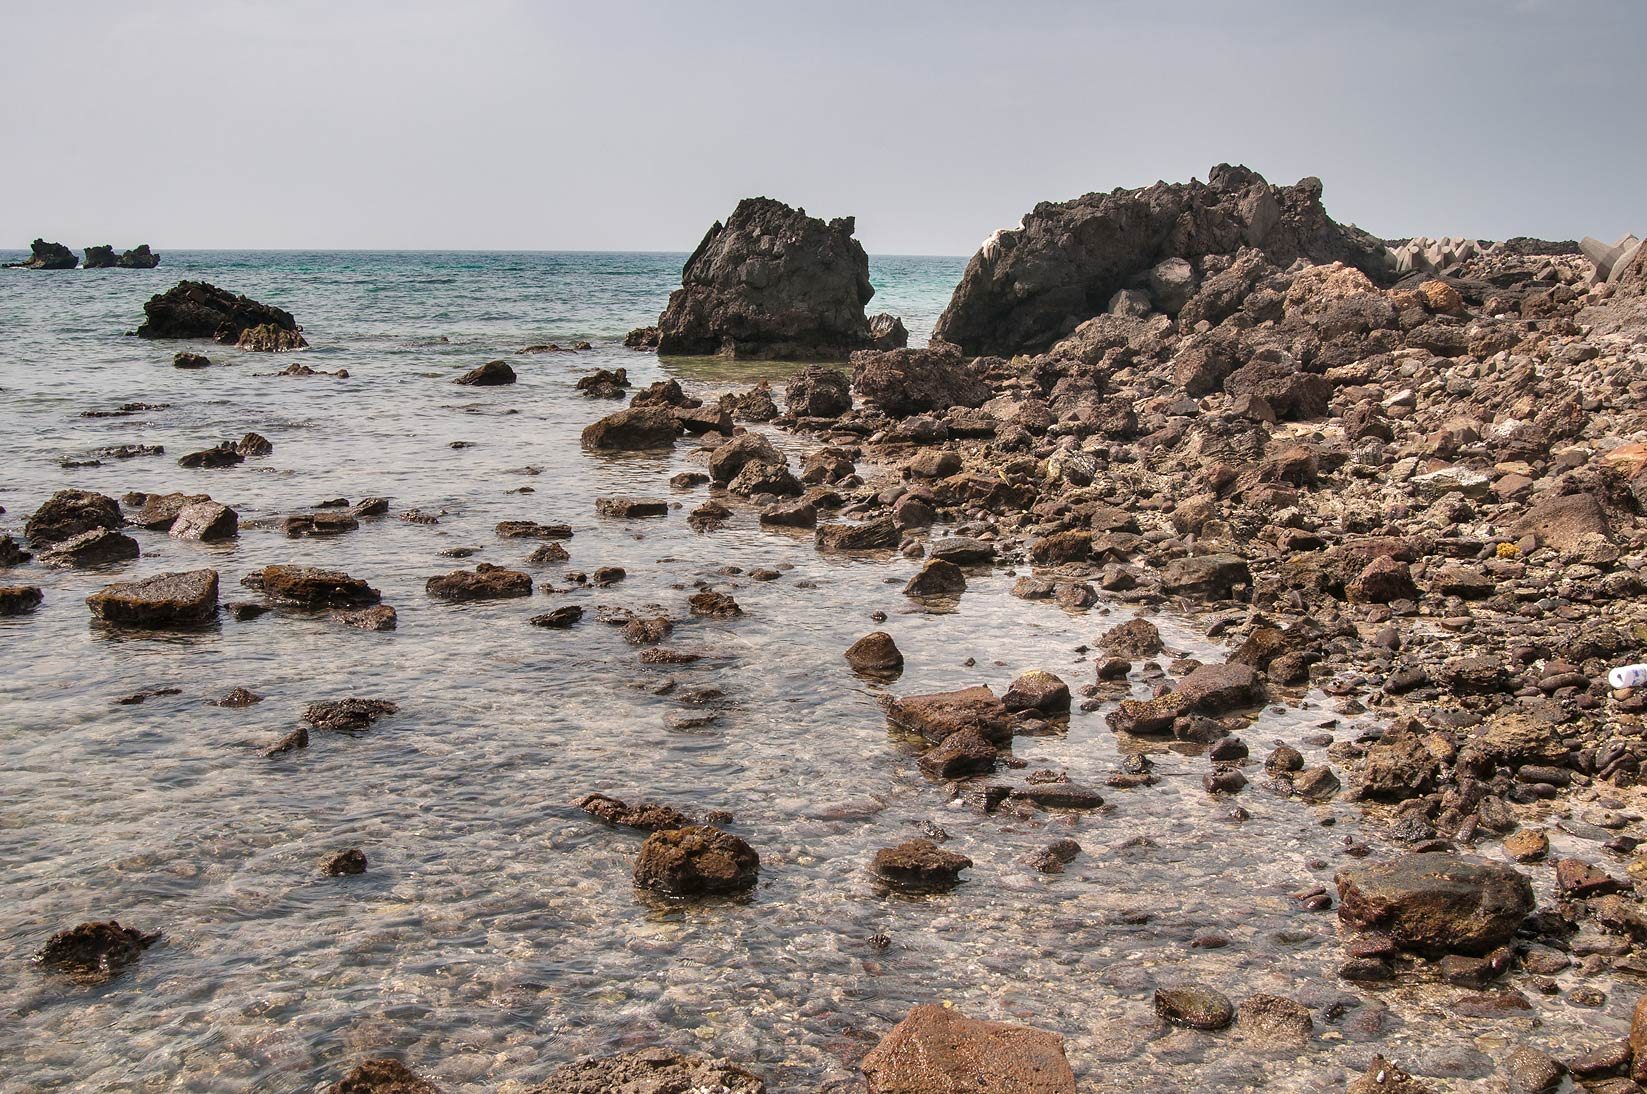 Rocky shore of Persian Gulf in western part of Haloul Island (Jazirat Halul). Qatar